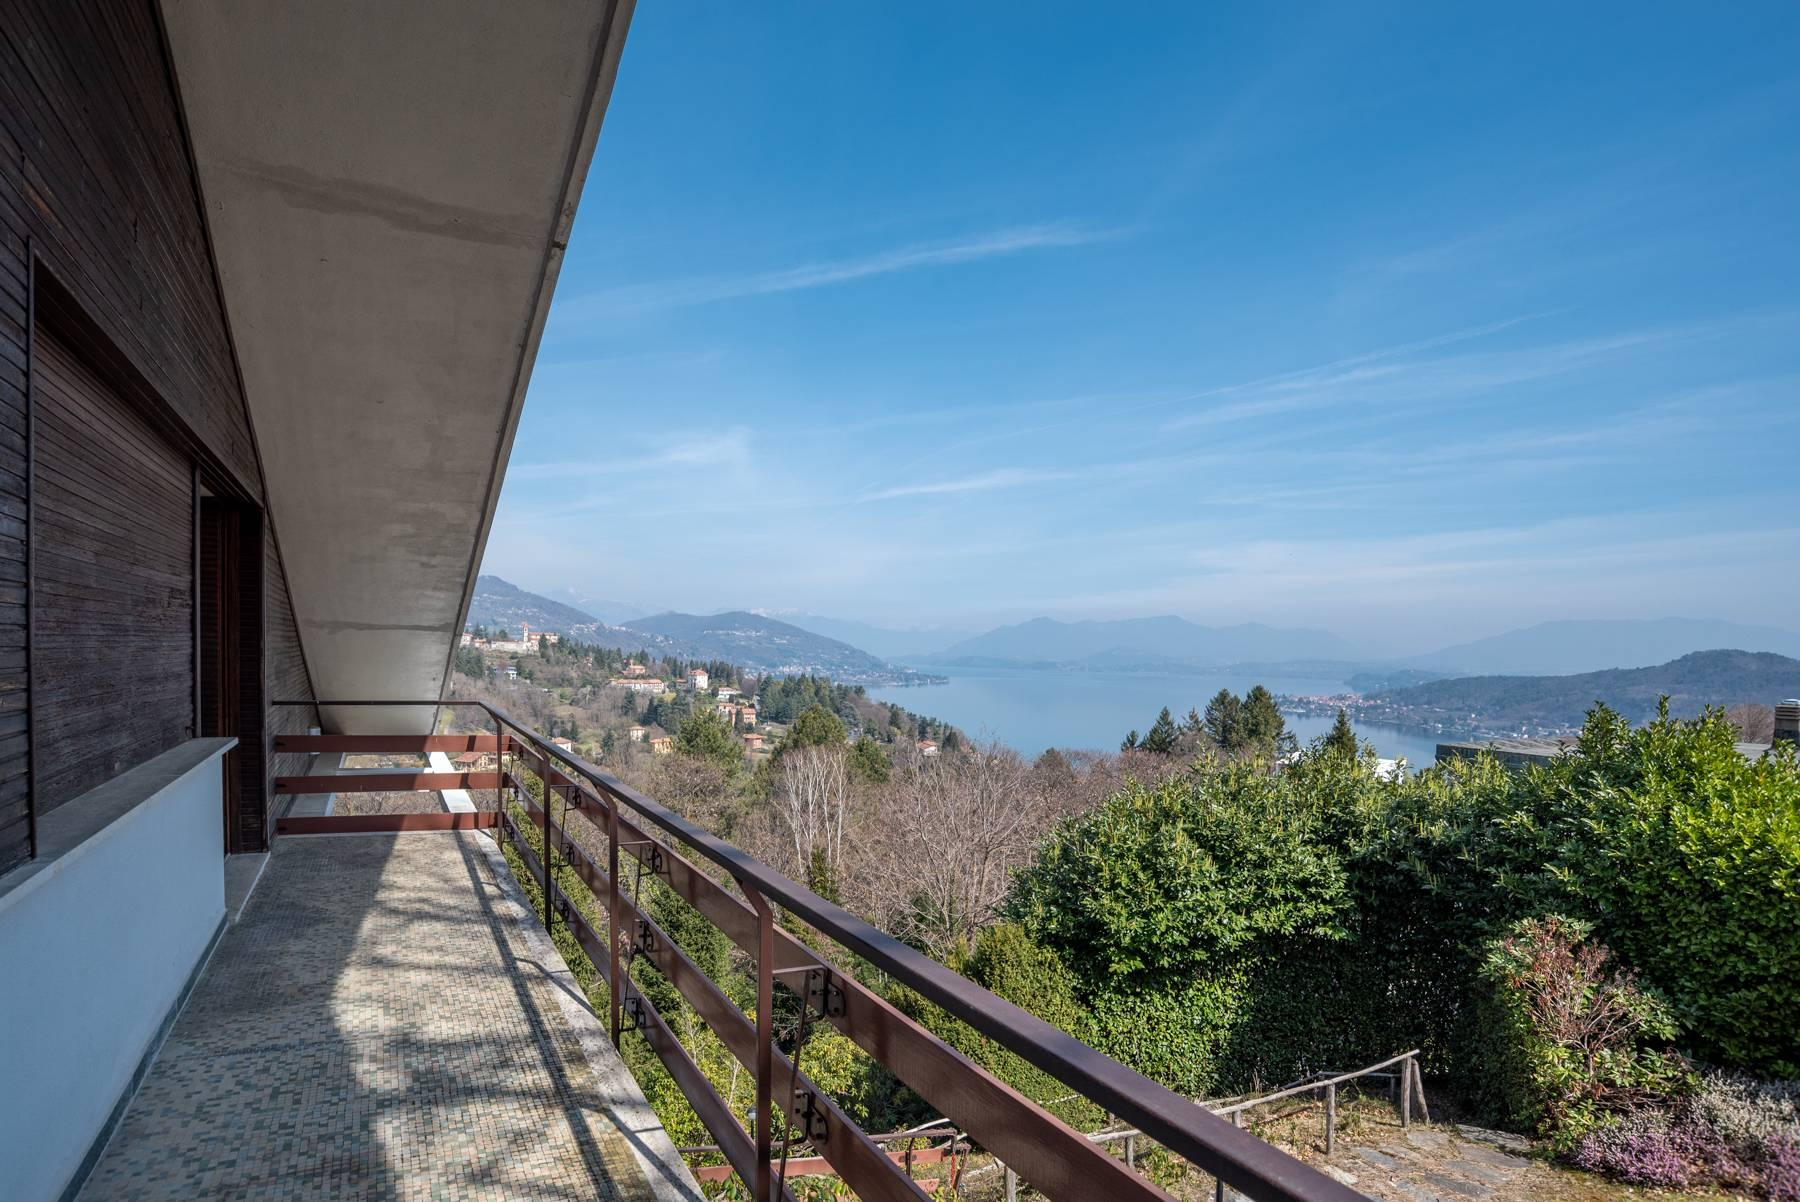 Villa on the hills of Arona overlooking the lake - 8